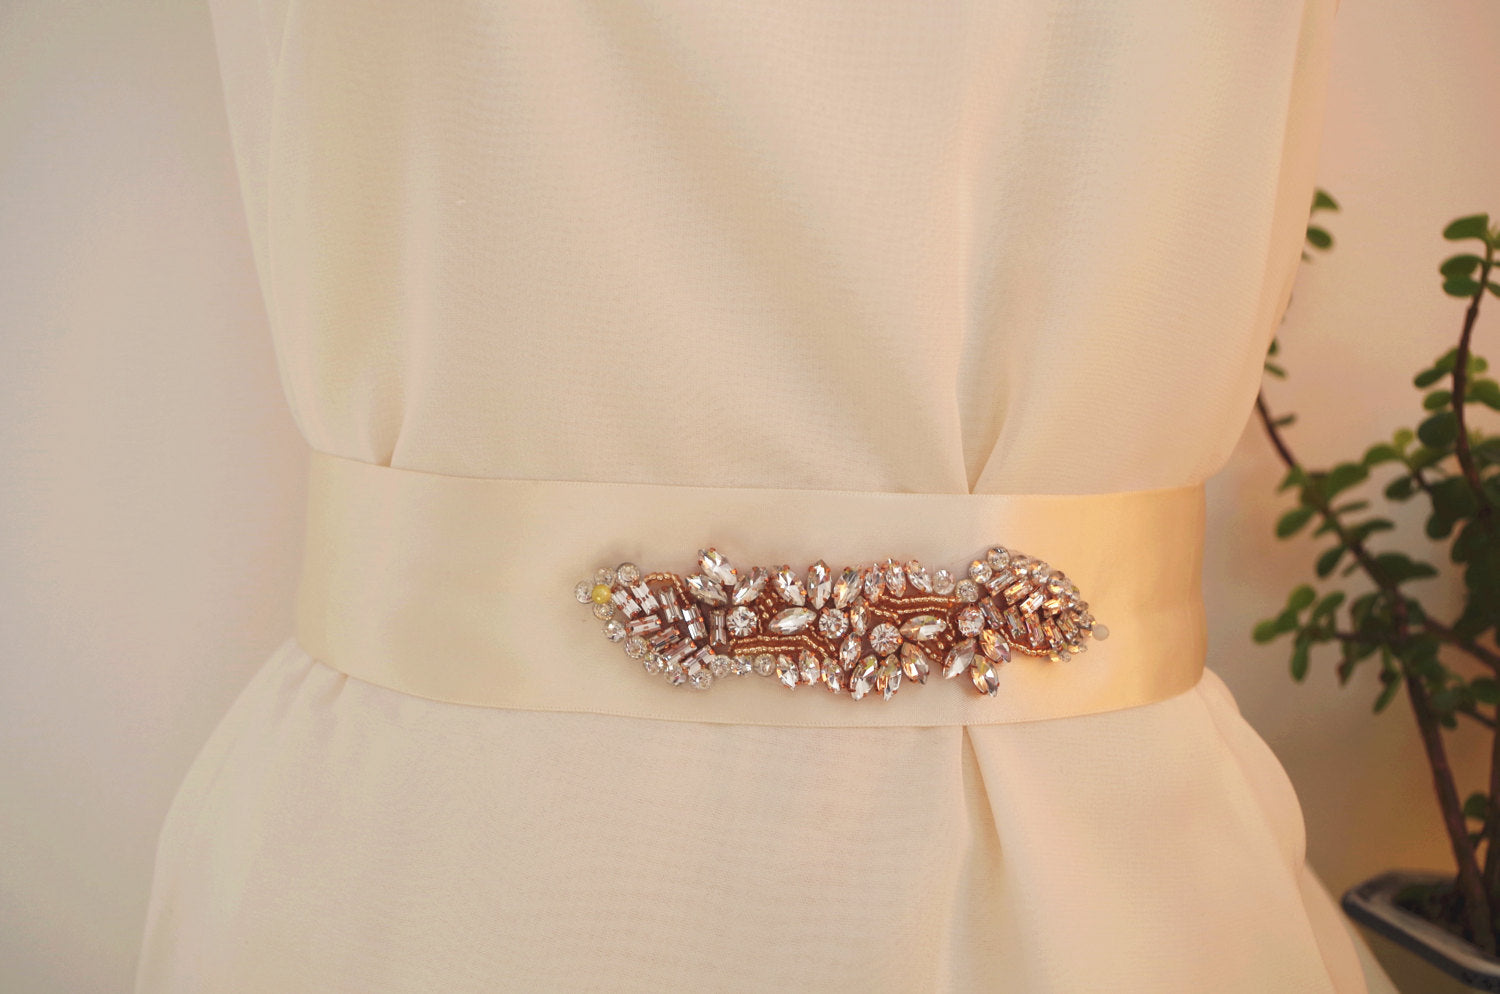 rose gold Rhinestone Sash belt applique, bridal crystal floral sash applique, bridal sash belt, rose gold crystal headband, bridal headpiece